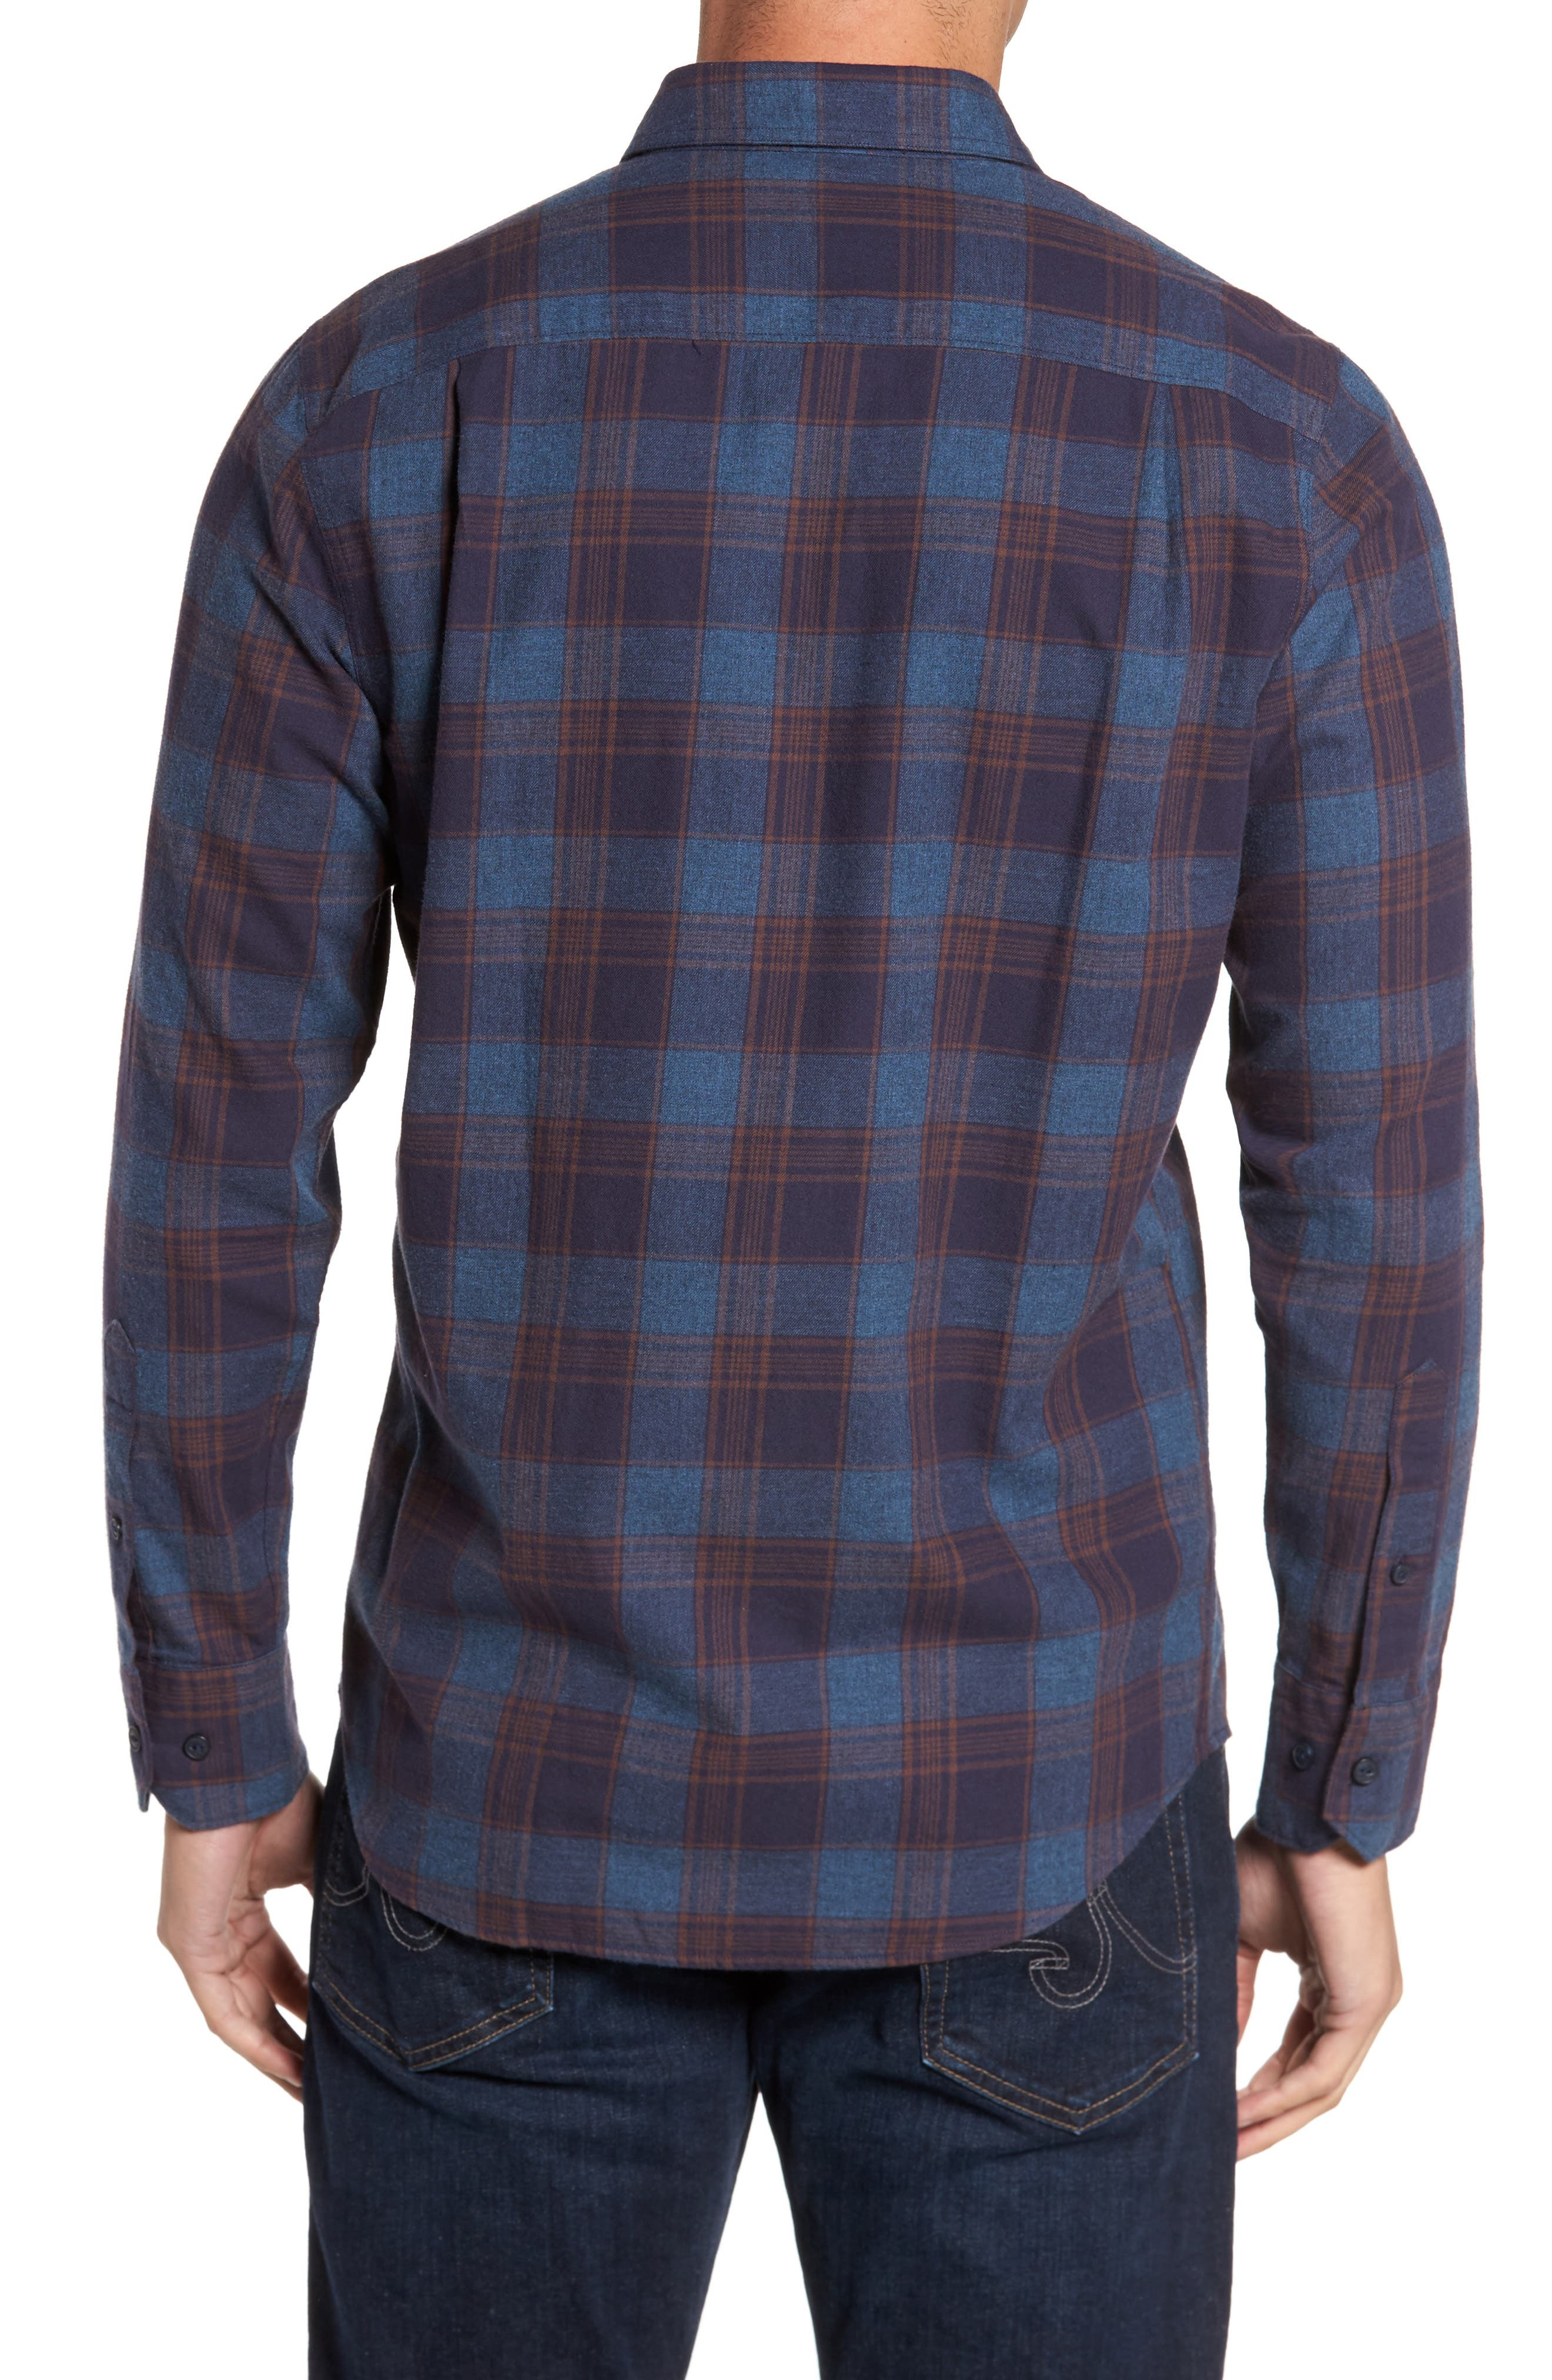 Regular Fit Lumber Check Flannel Shirt,                             Alternate thumbnail 2, color,                             Blue Canal Navy Plaid